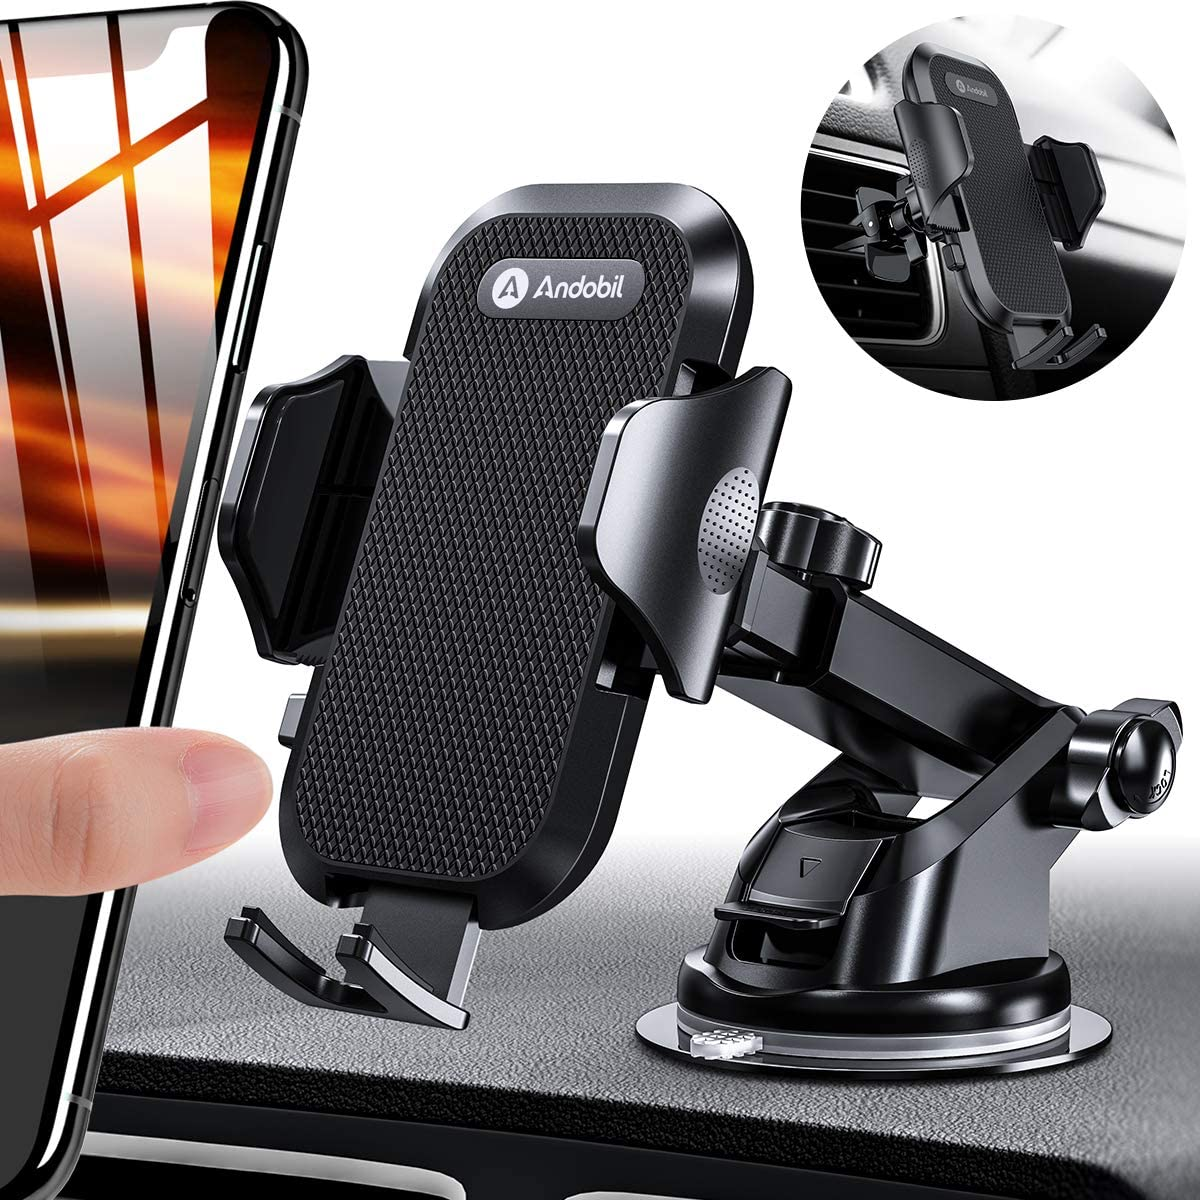 Andobil Car Phone Mount Easy Clamp, Newest Hands-Free Phone Holder for Car Dashboard Windshield Air Vent, Super Suction Cup, Compatible with iPhone 11/11 Pro/8 Plus/8/X/XR/XS/7 Plus Samsung S10/S9/S8 71i2NWhVoBL